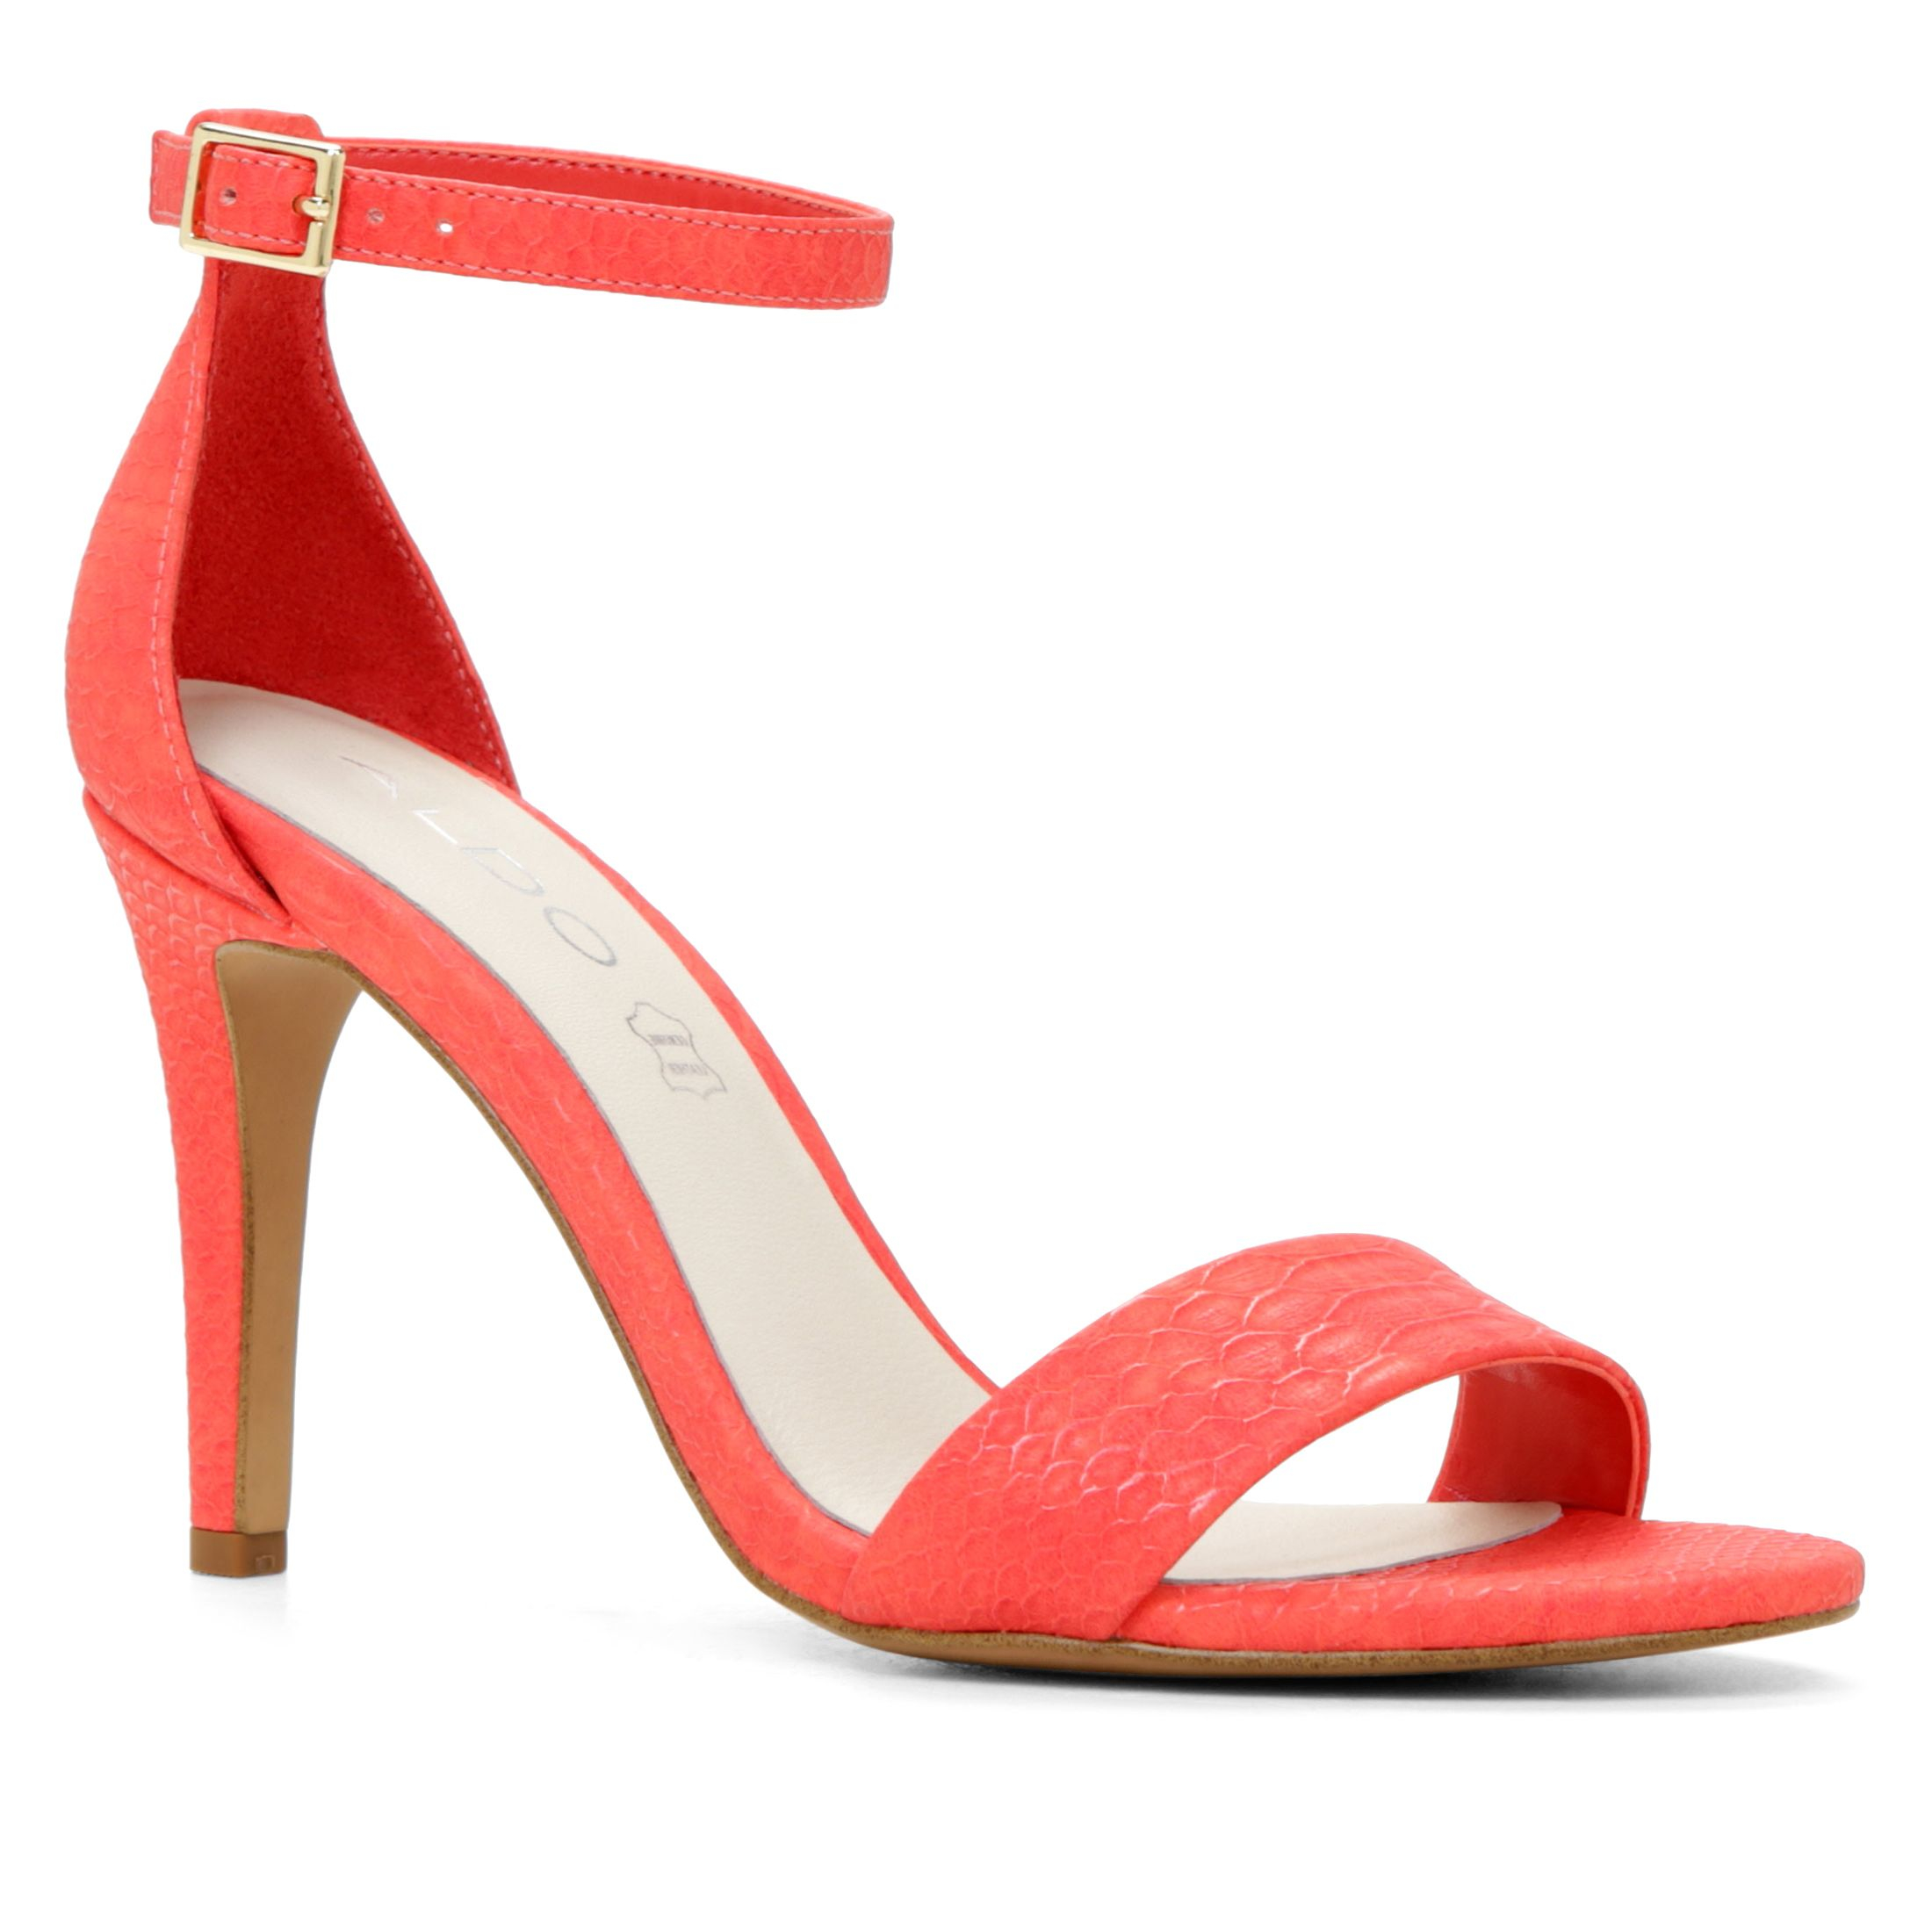 Red Ankle Strap Heel Sandals